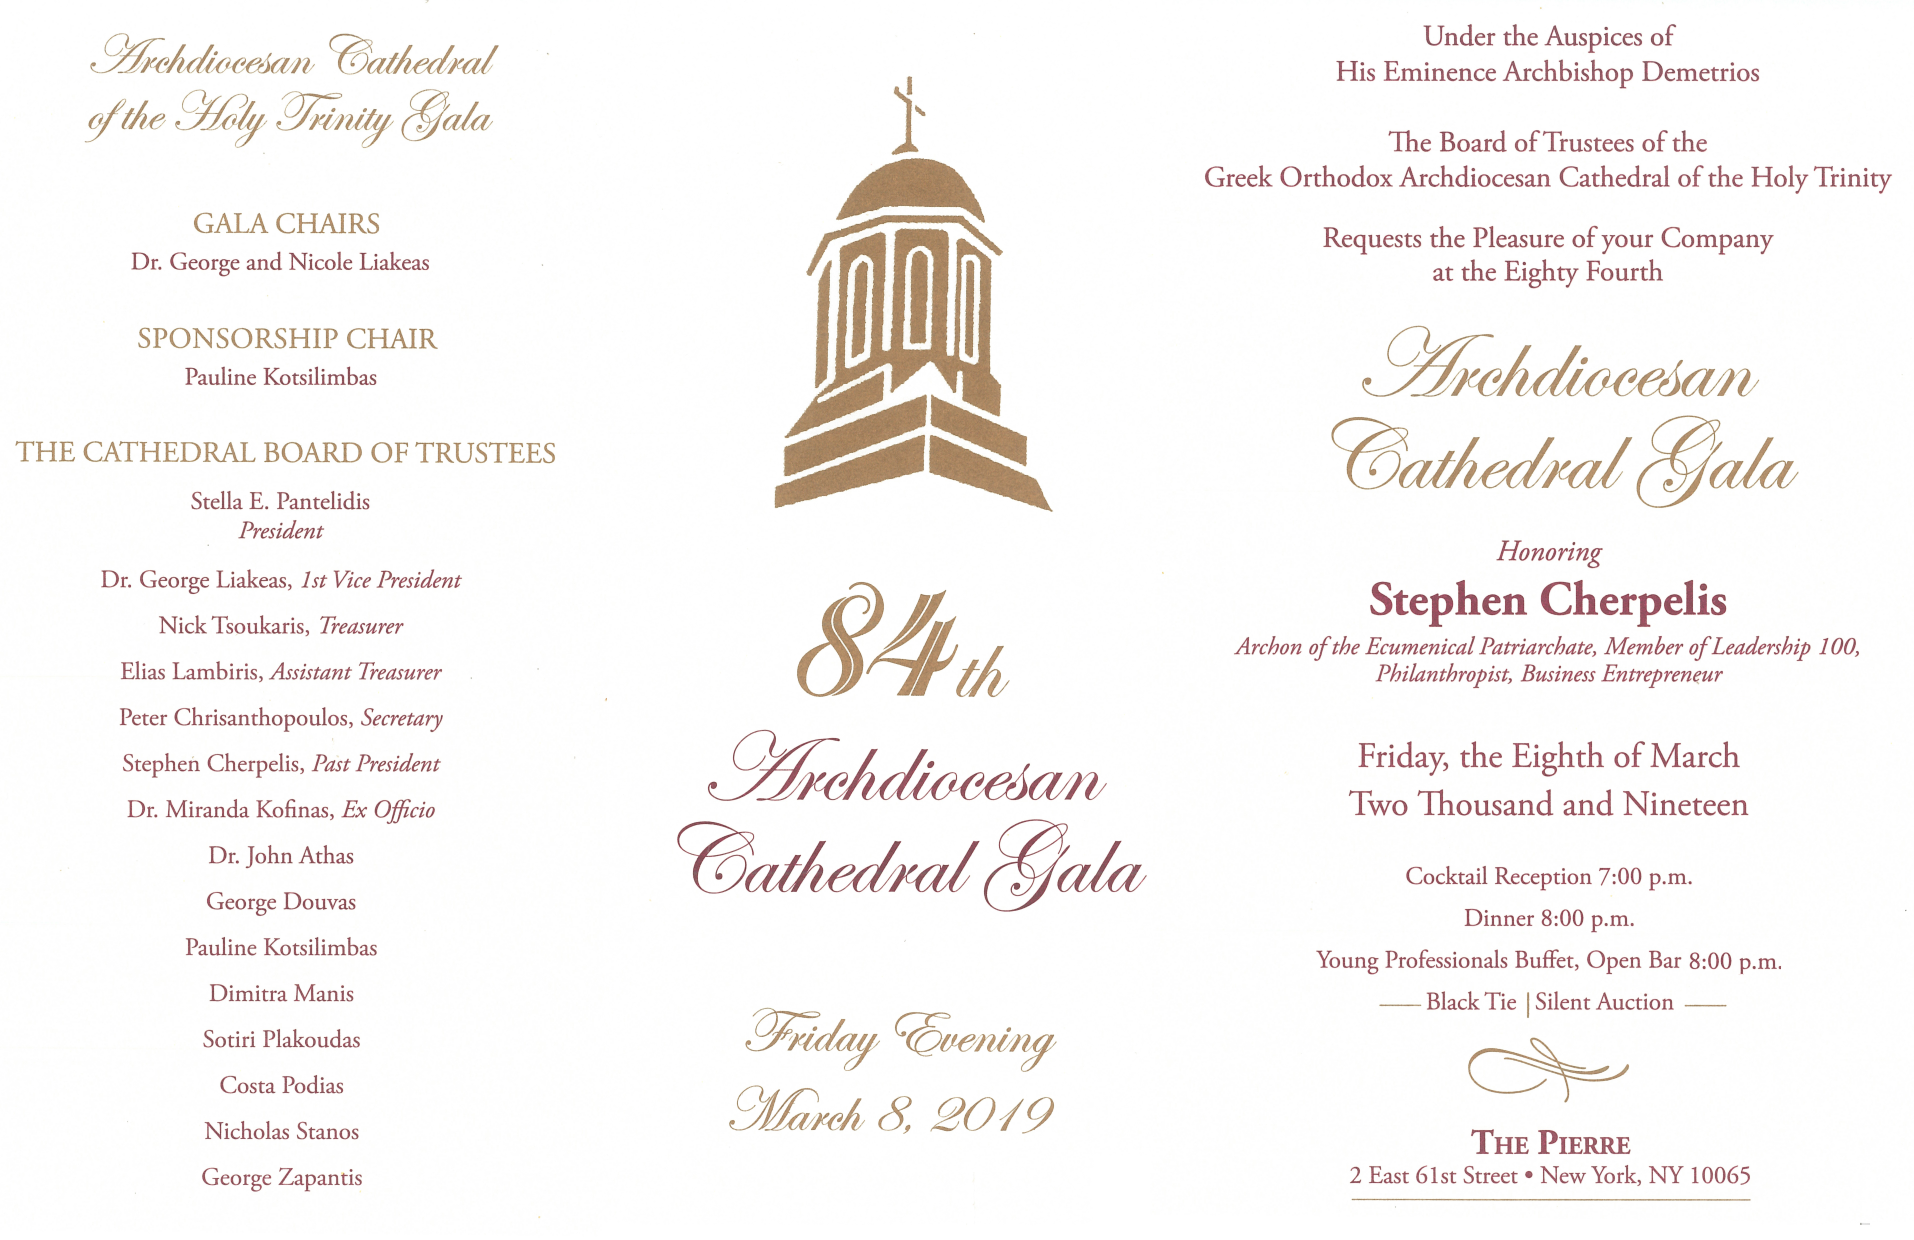 84th Archdiocesan Cathedral Gala